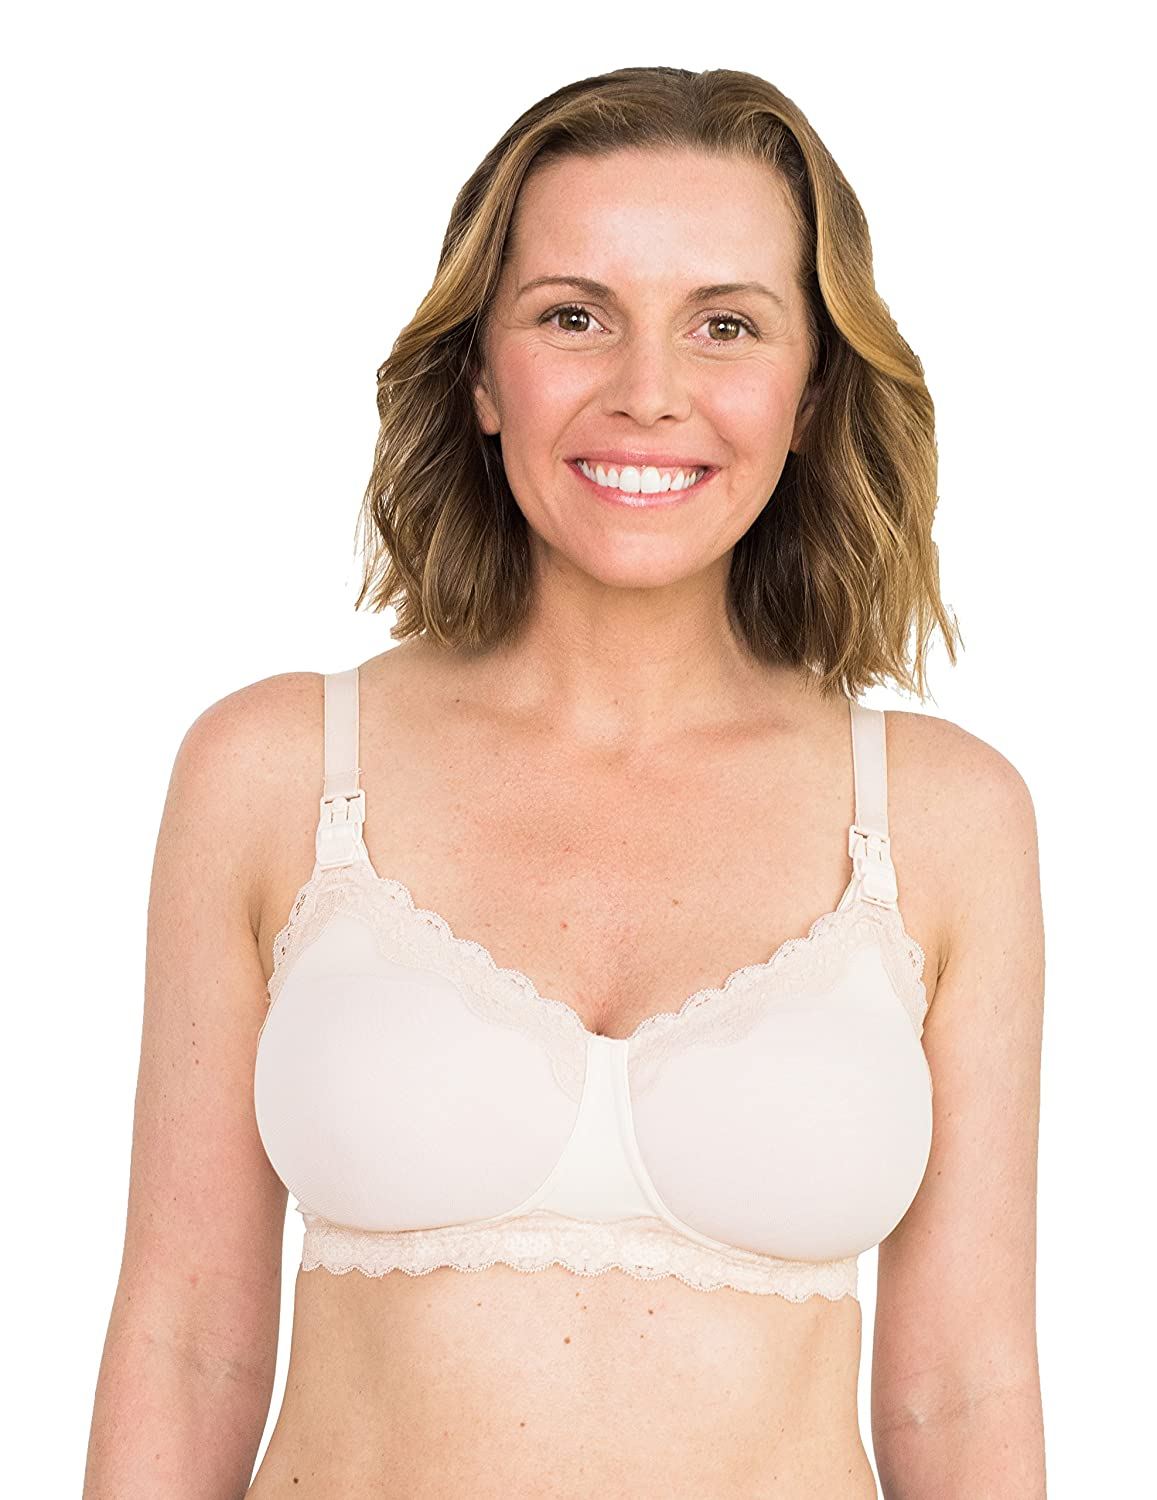 61a868a4e0 The SuperMom bra combines the best features of your favorite maternity